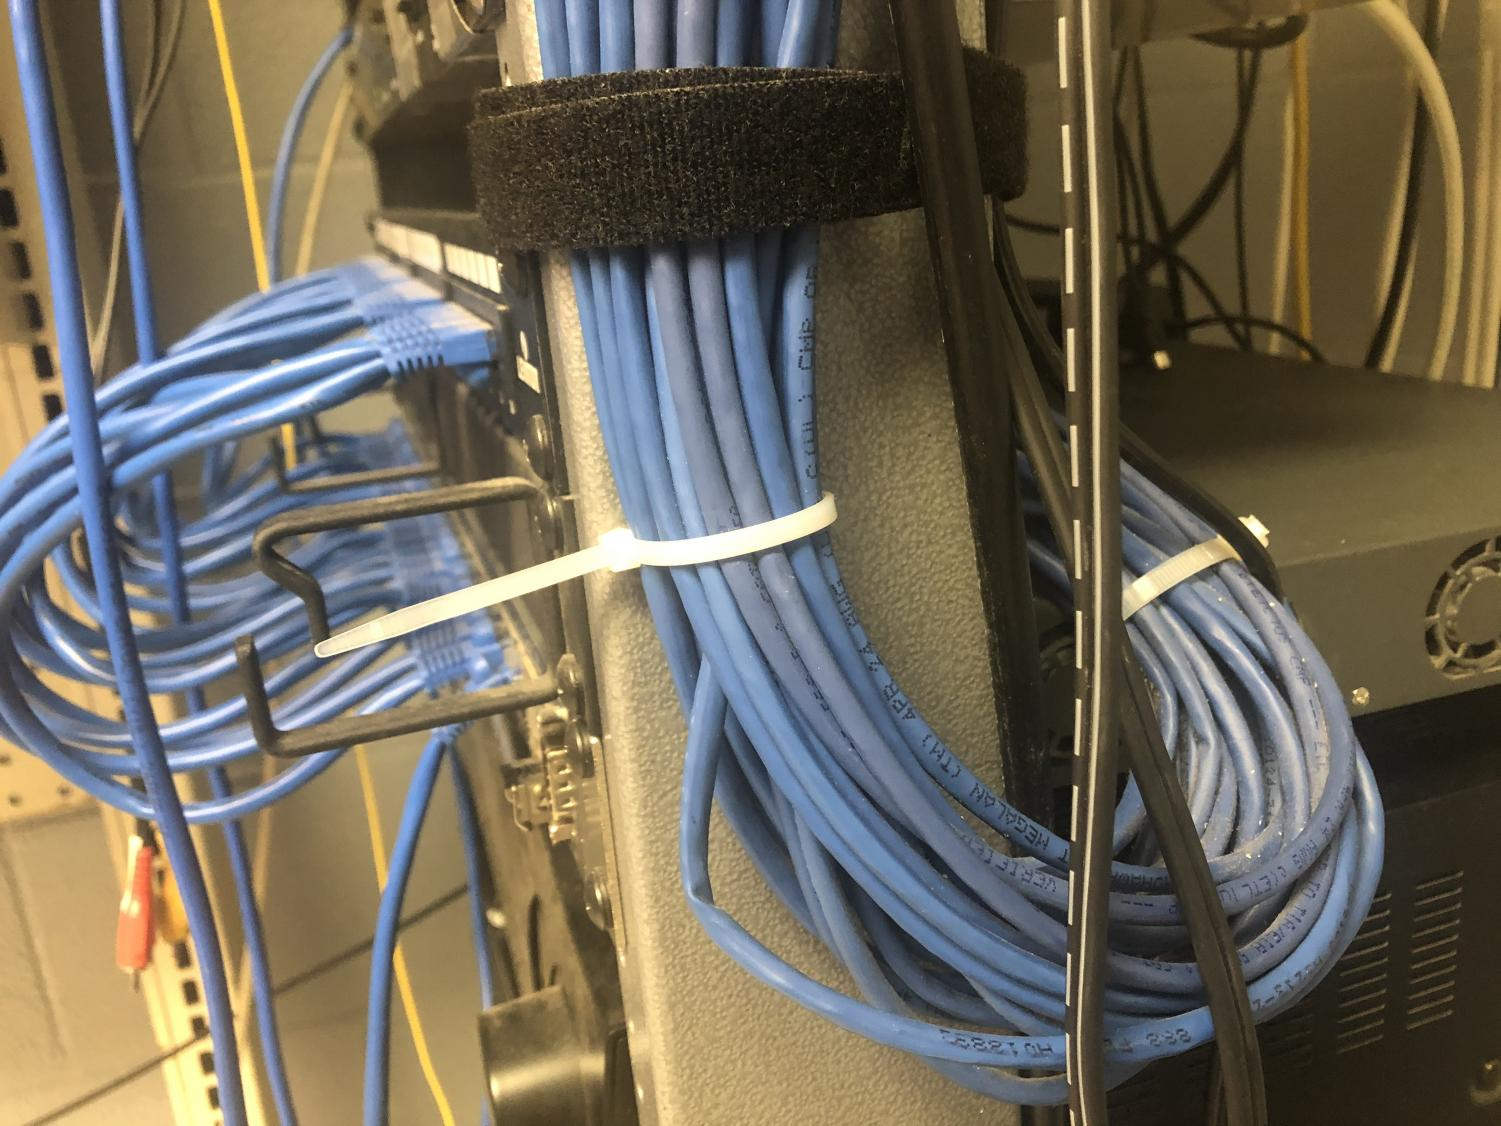 Internet connectivity continues to be a problem for WV residents.